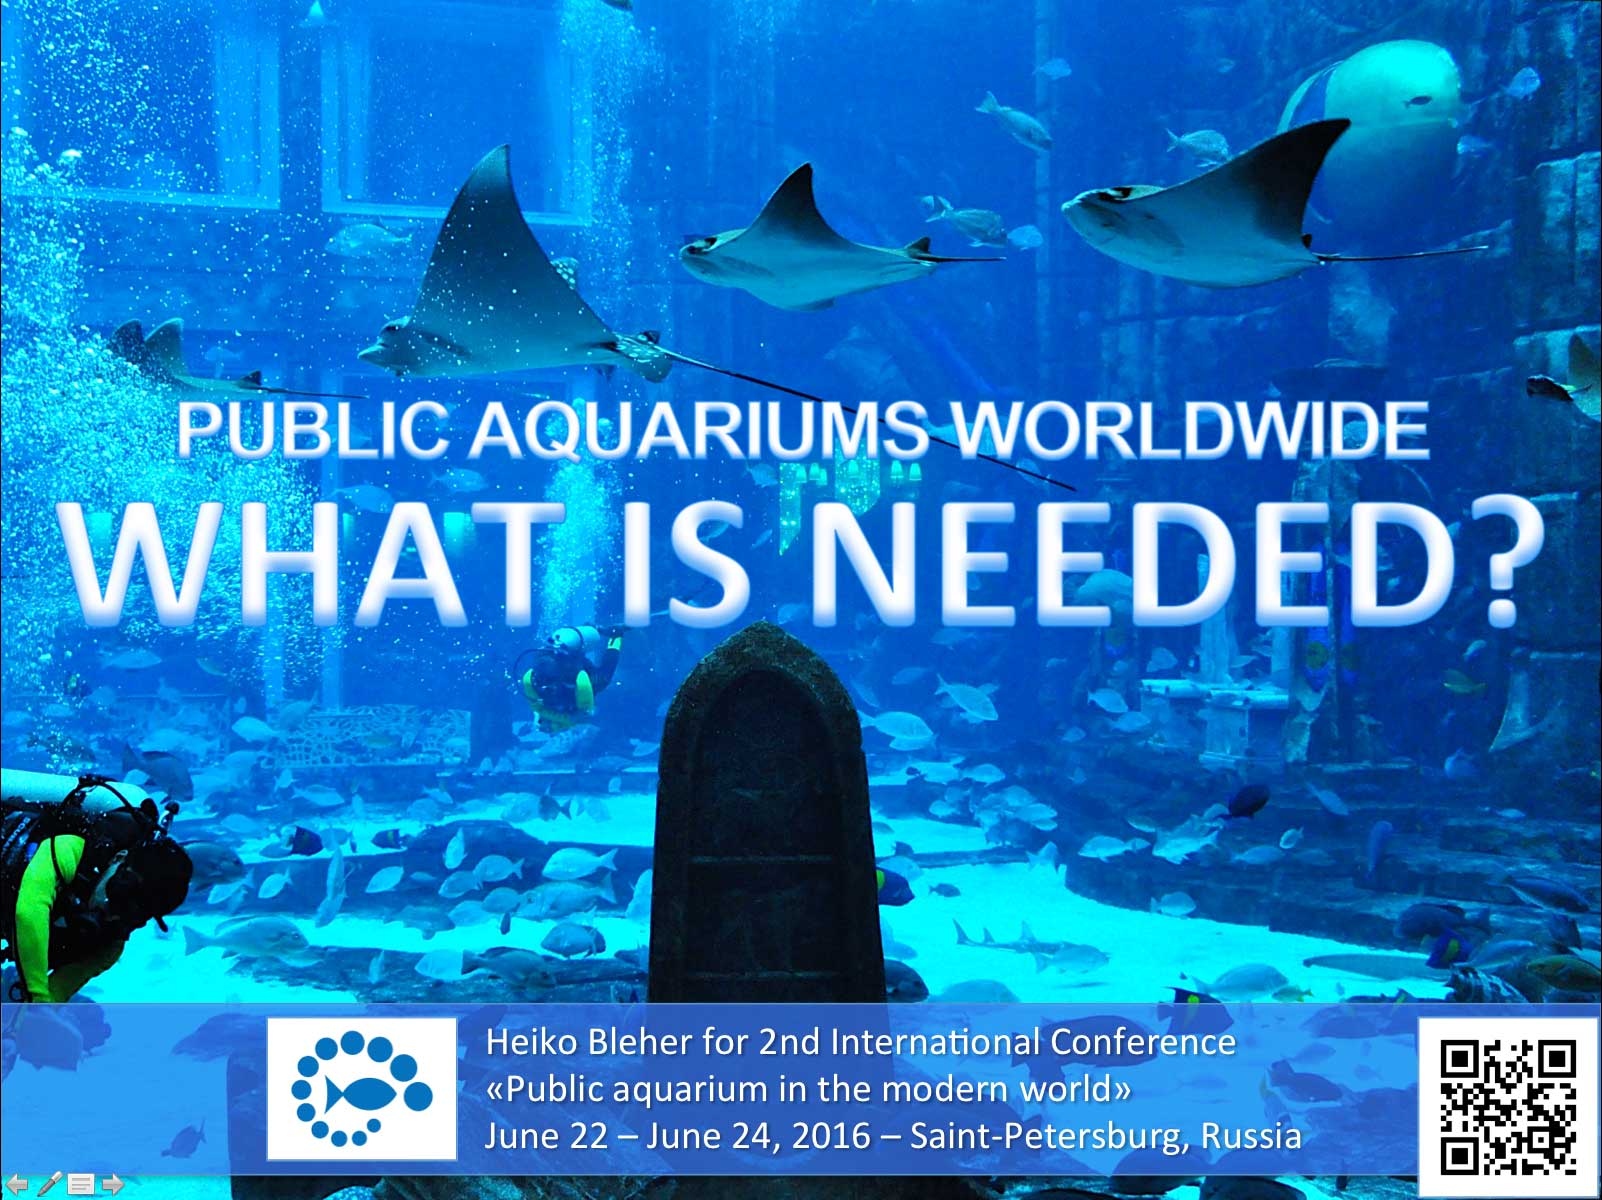 Heiko Bleher for 2nd International Conference – Public aquarium in the modern world